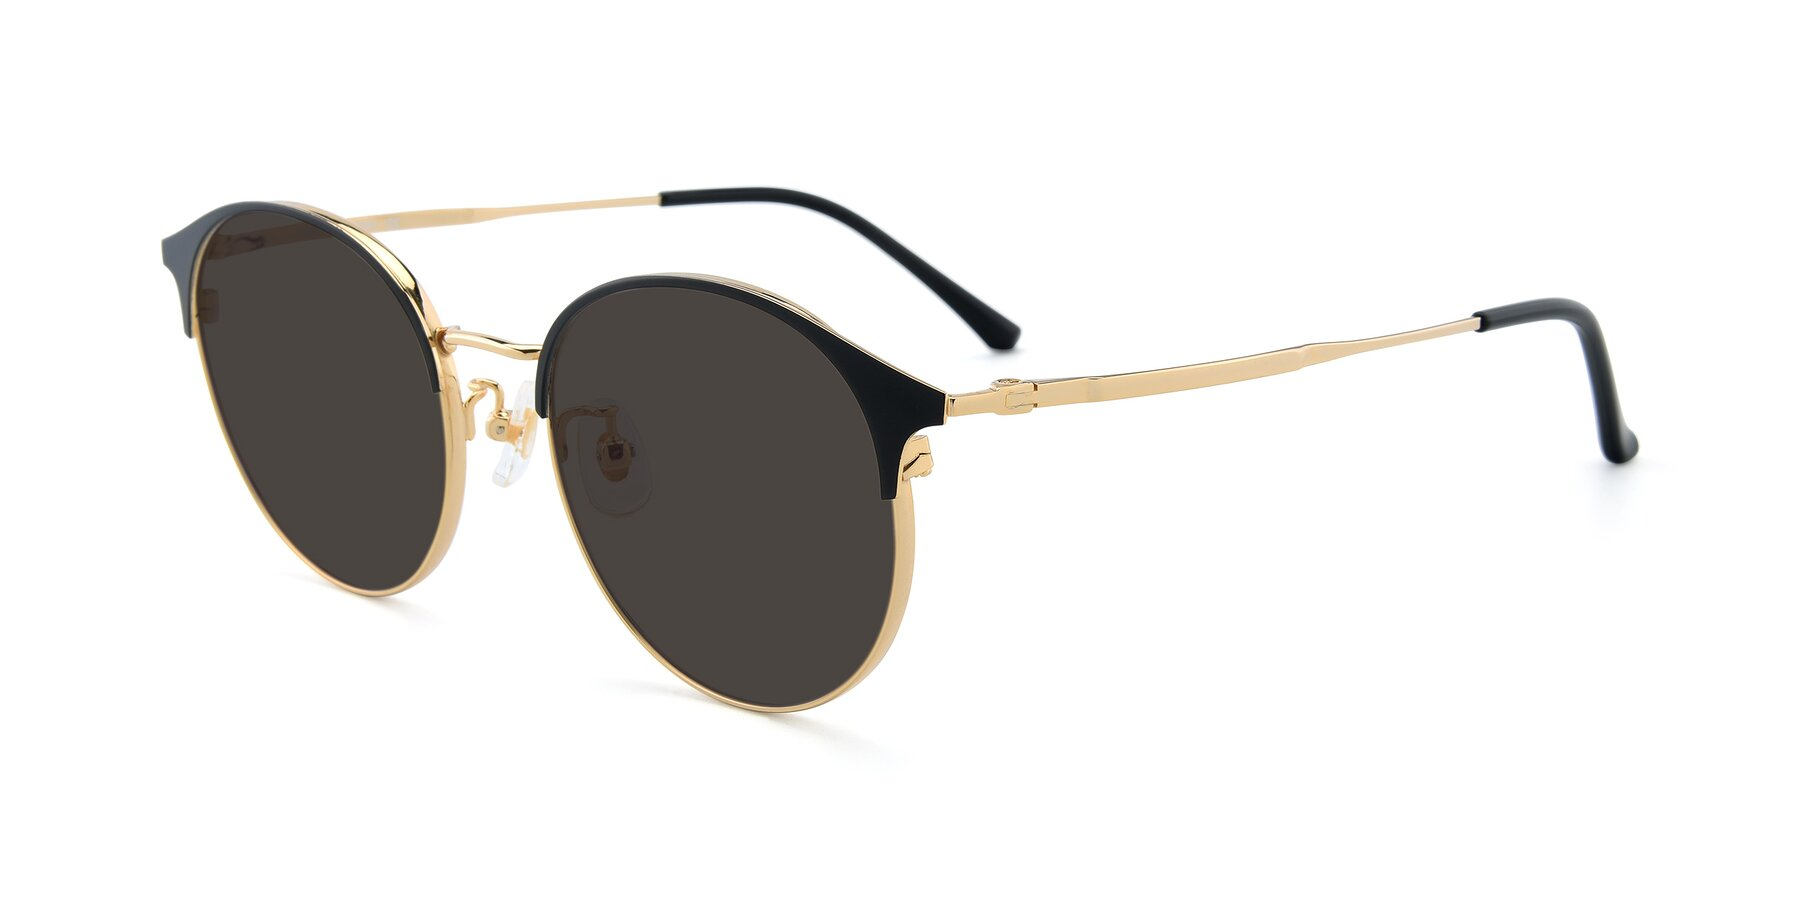 Angle of XC-8031 in Black-Gold with Gray Tinted Lenses